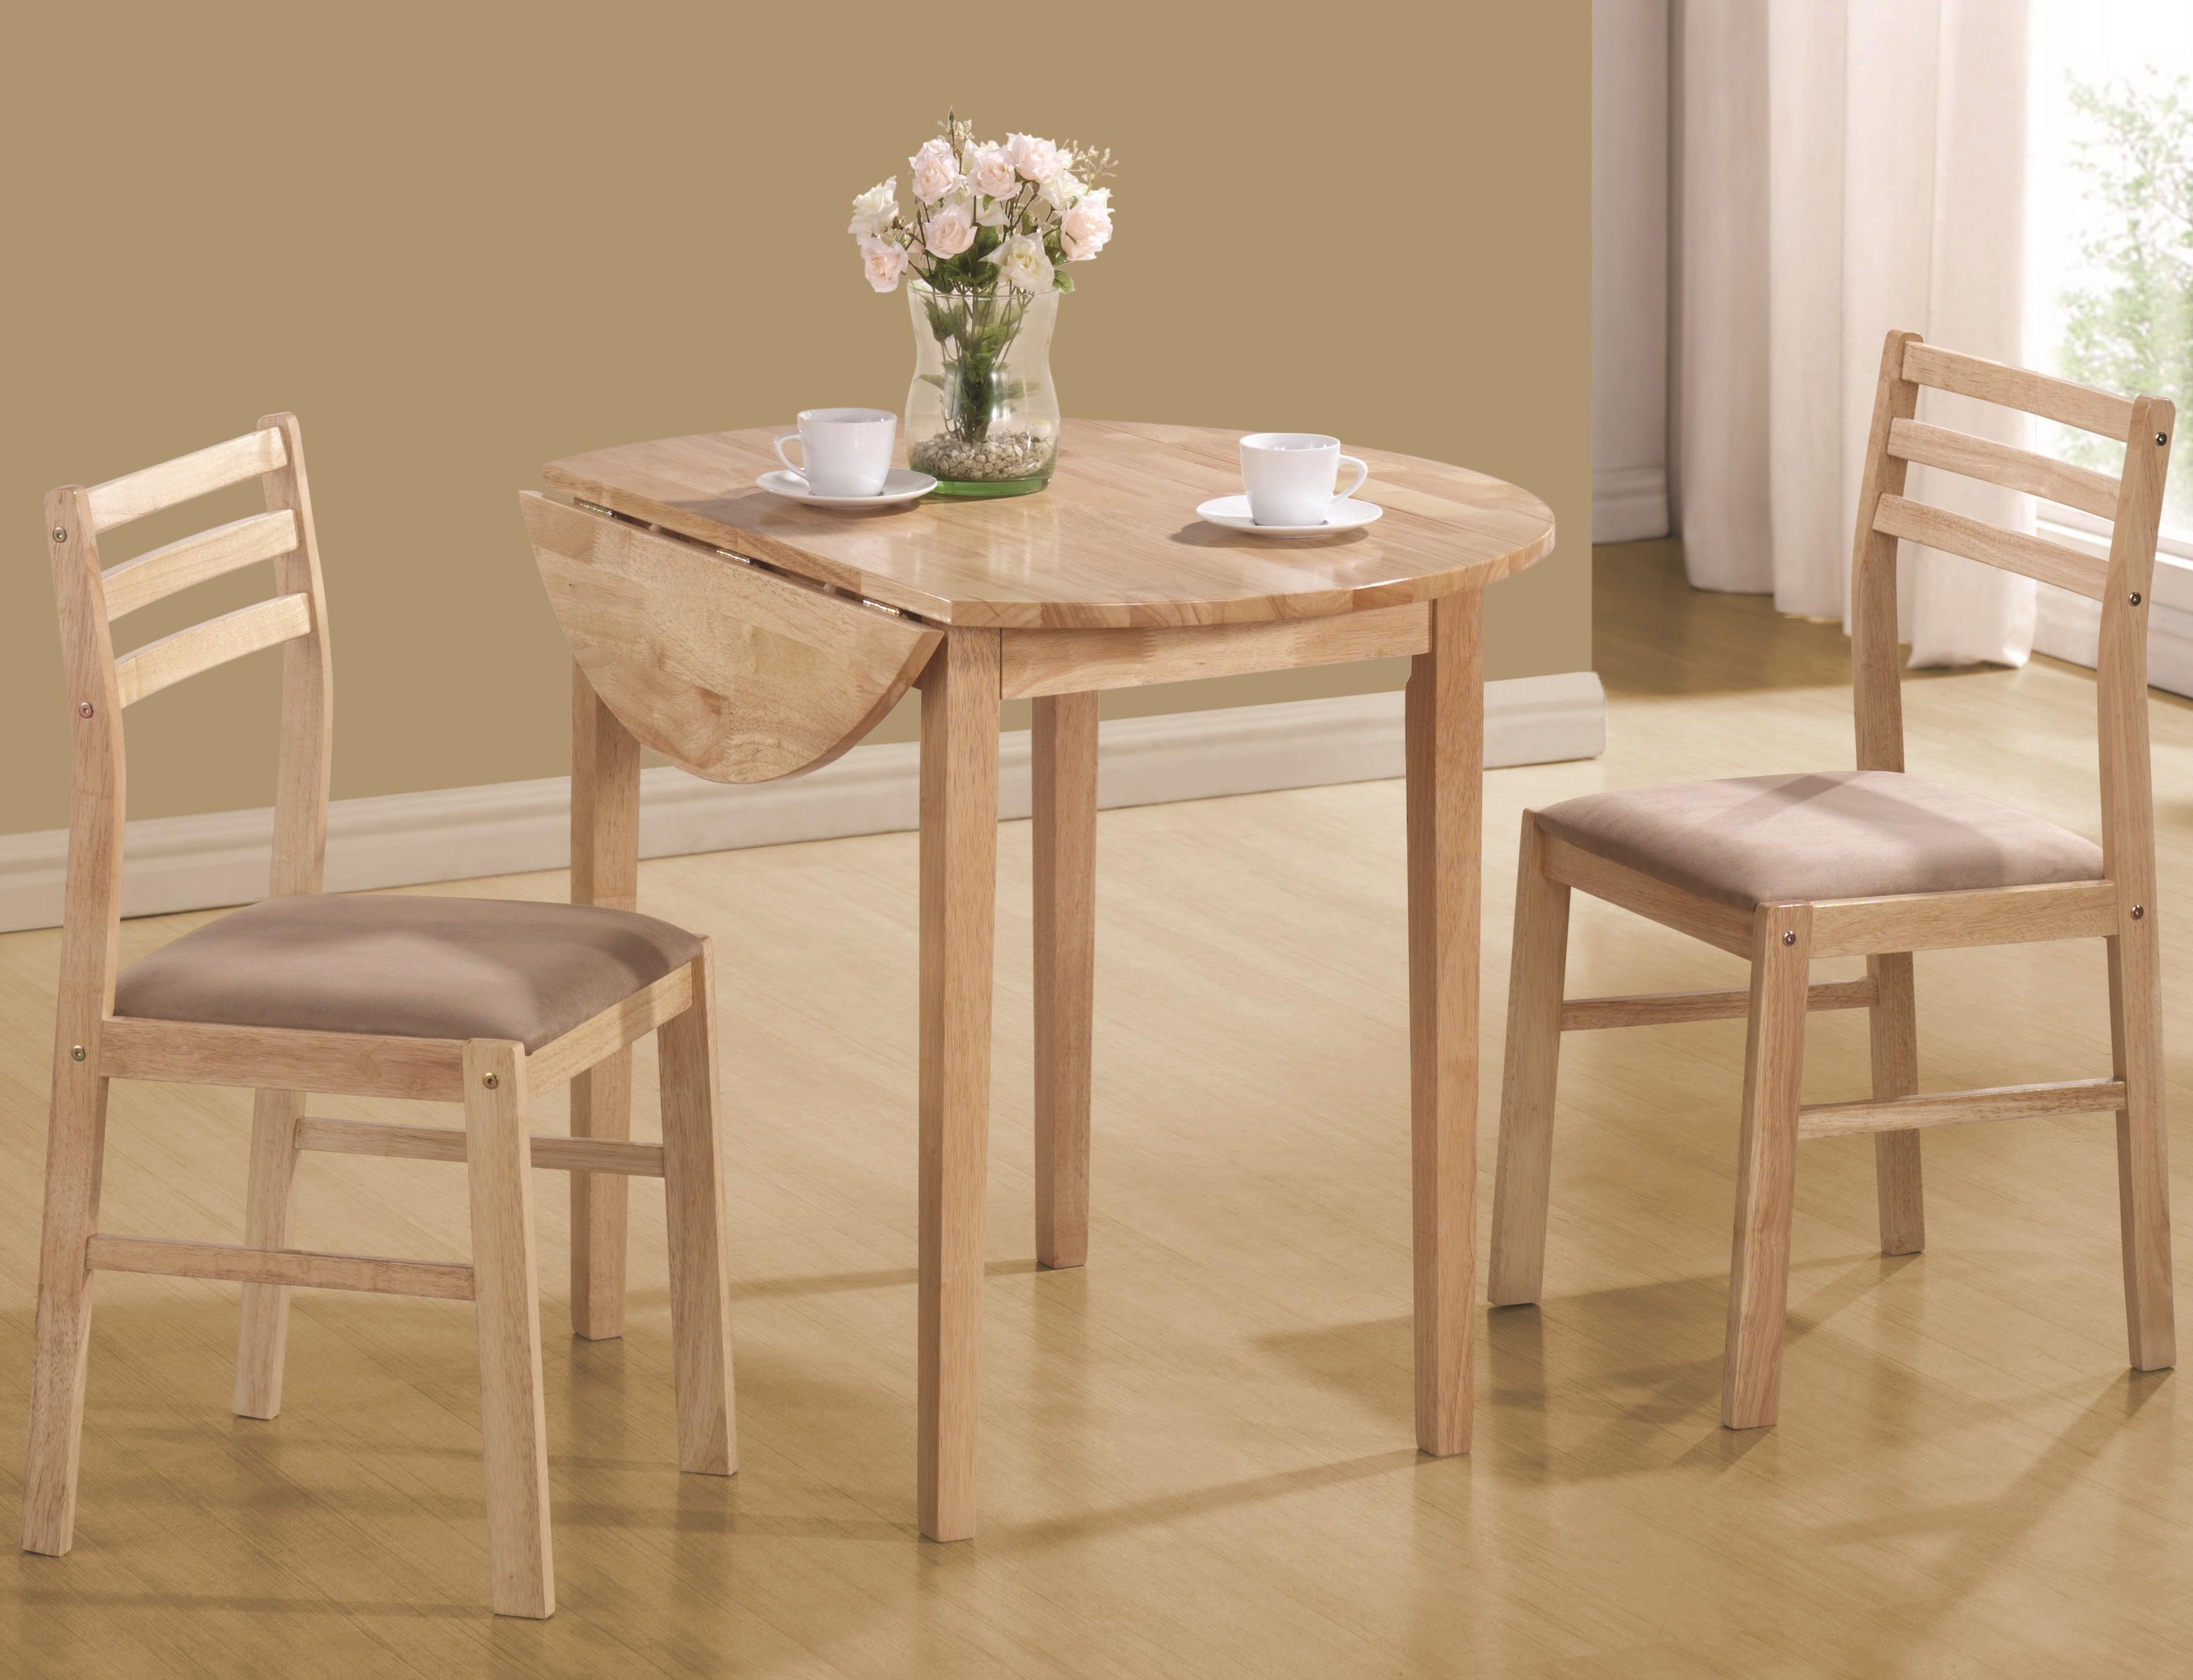 3 Piece Breakfast Nook Dinning Set With Regard To Well Known Regular Height Casual Dining – Breakfast Nook Table And Chair Set Co (View 12 of 25)